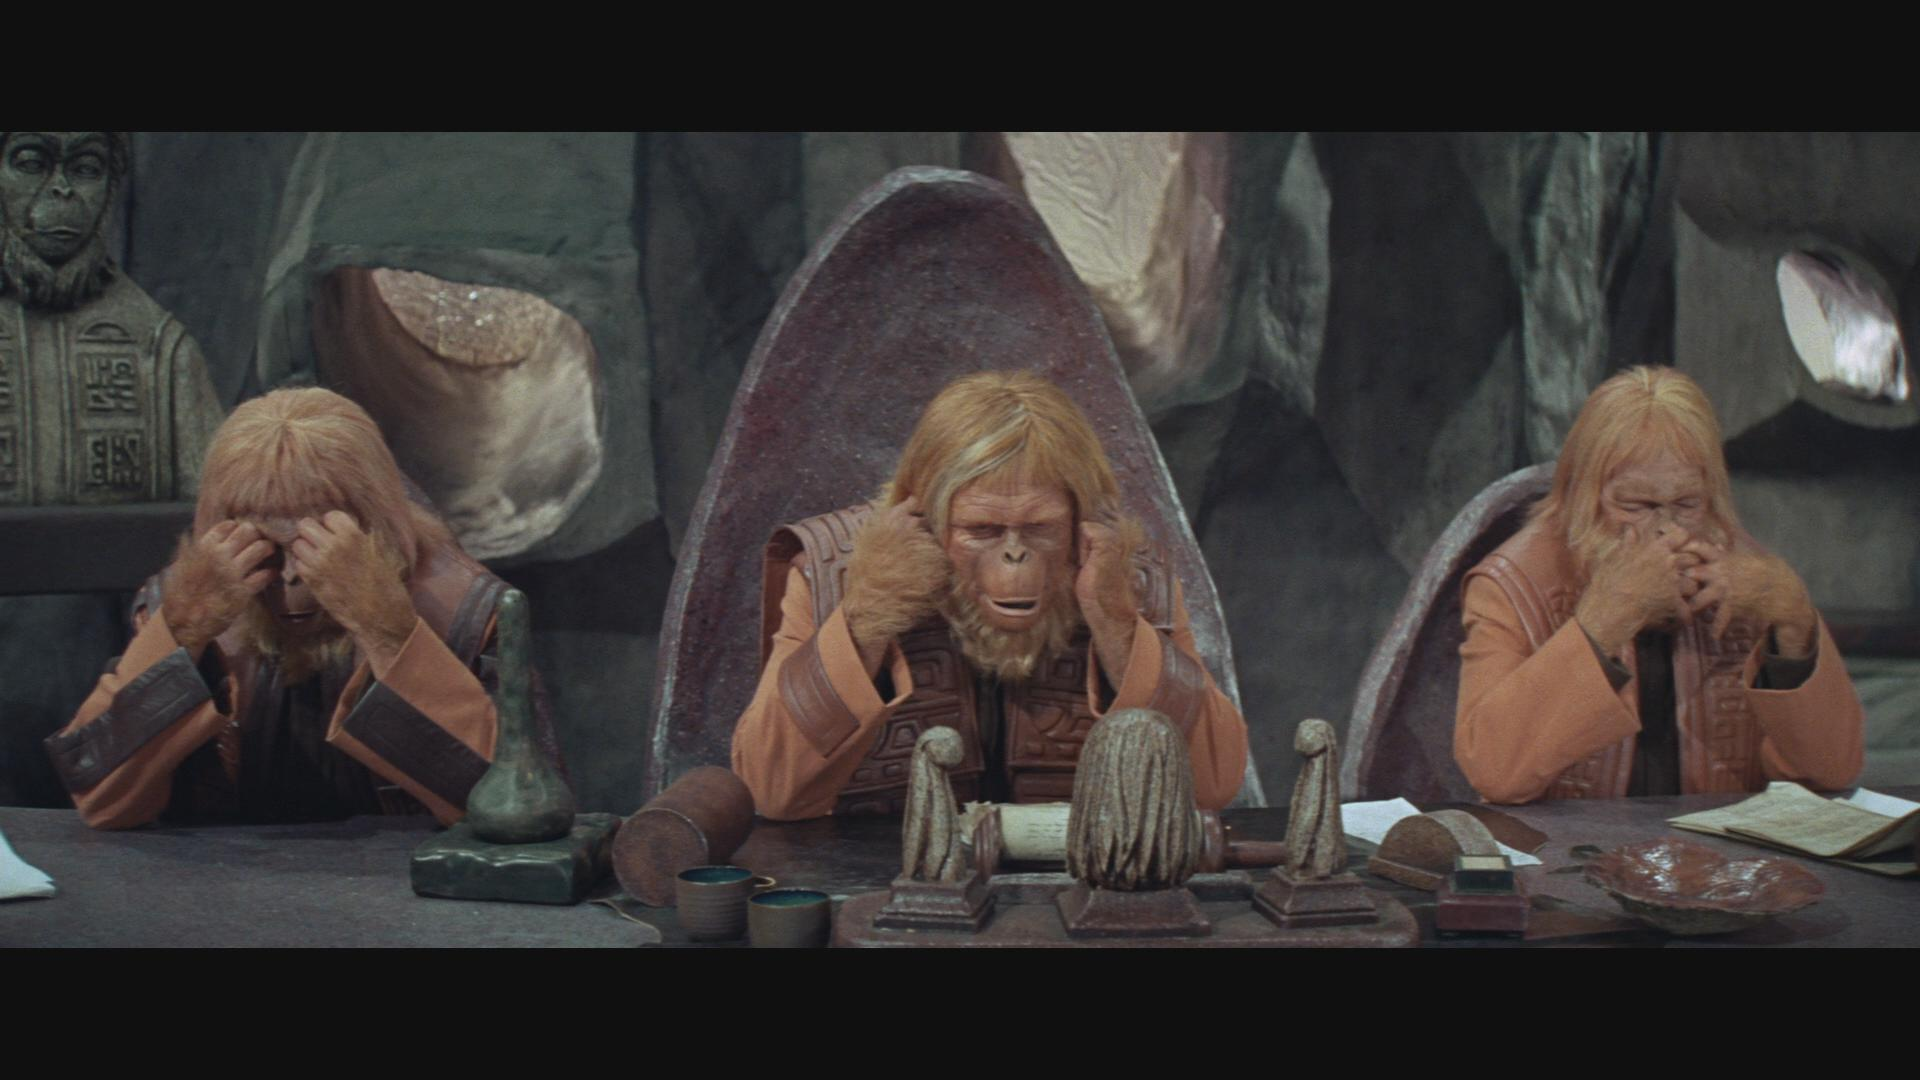 James Daly, Woodrow Parfrey, and James Whitmore in Planet of the Apes (1968)